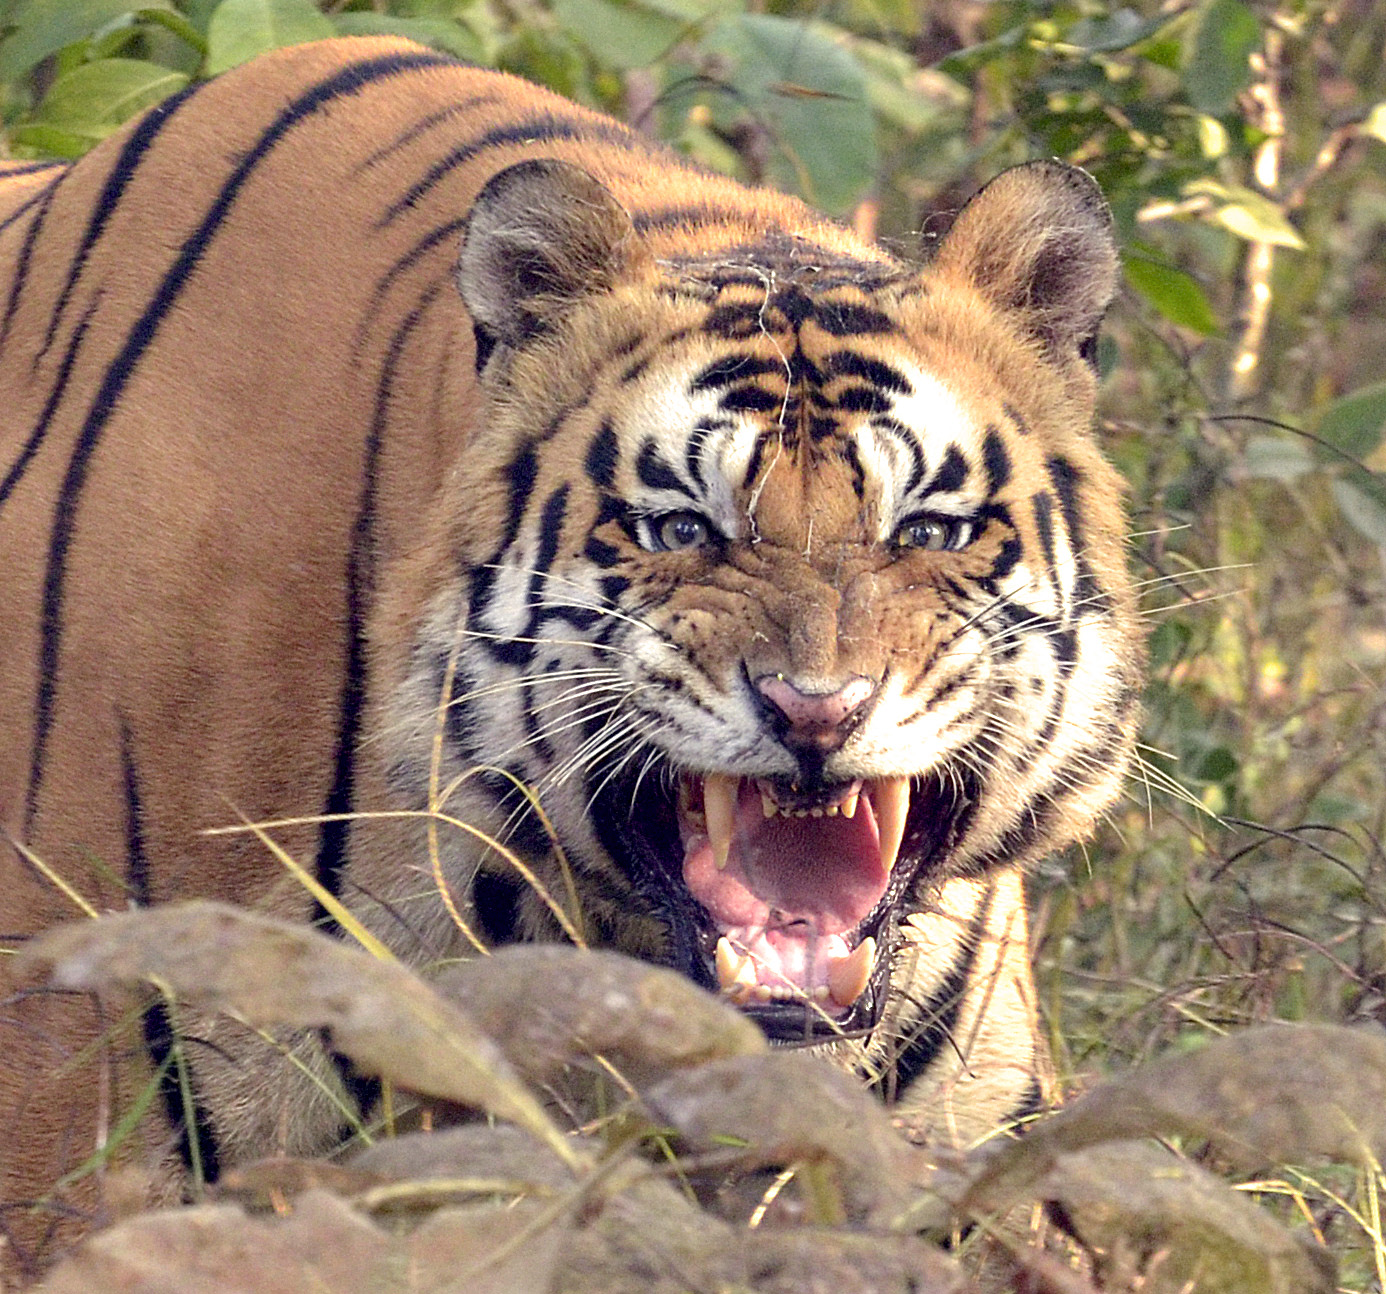 Snarling Tiger @dkinwild